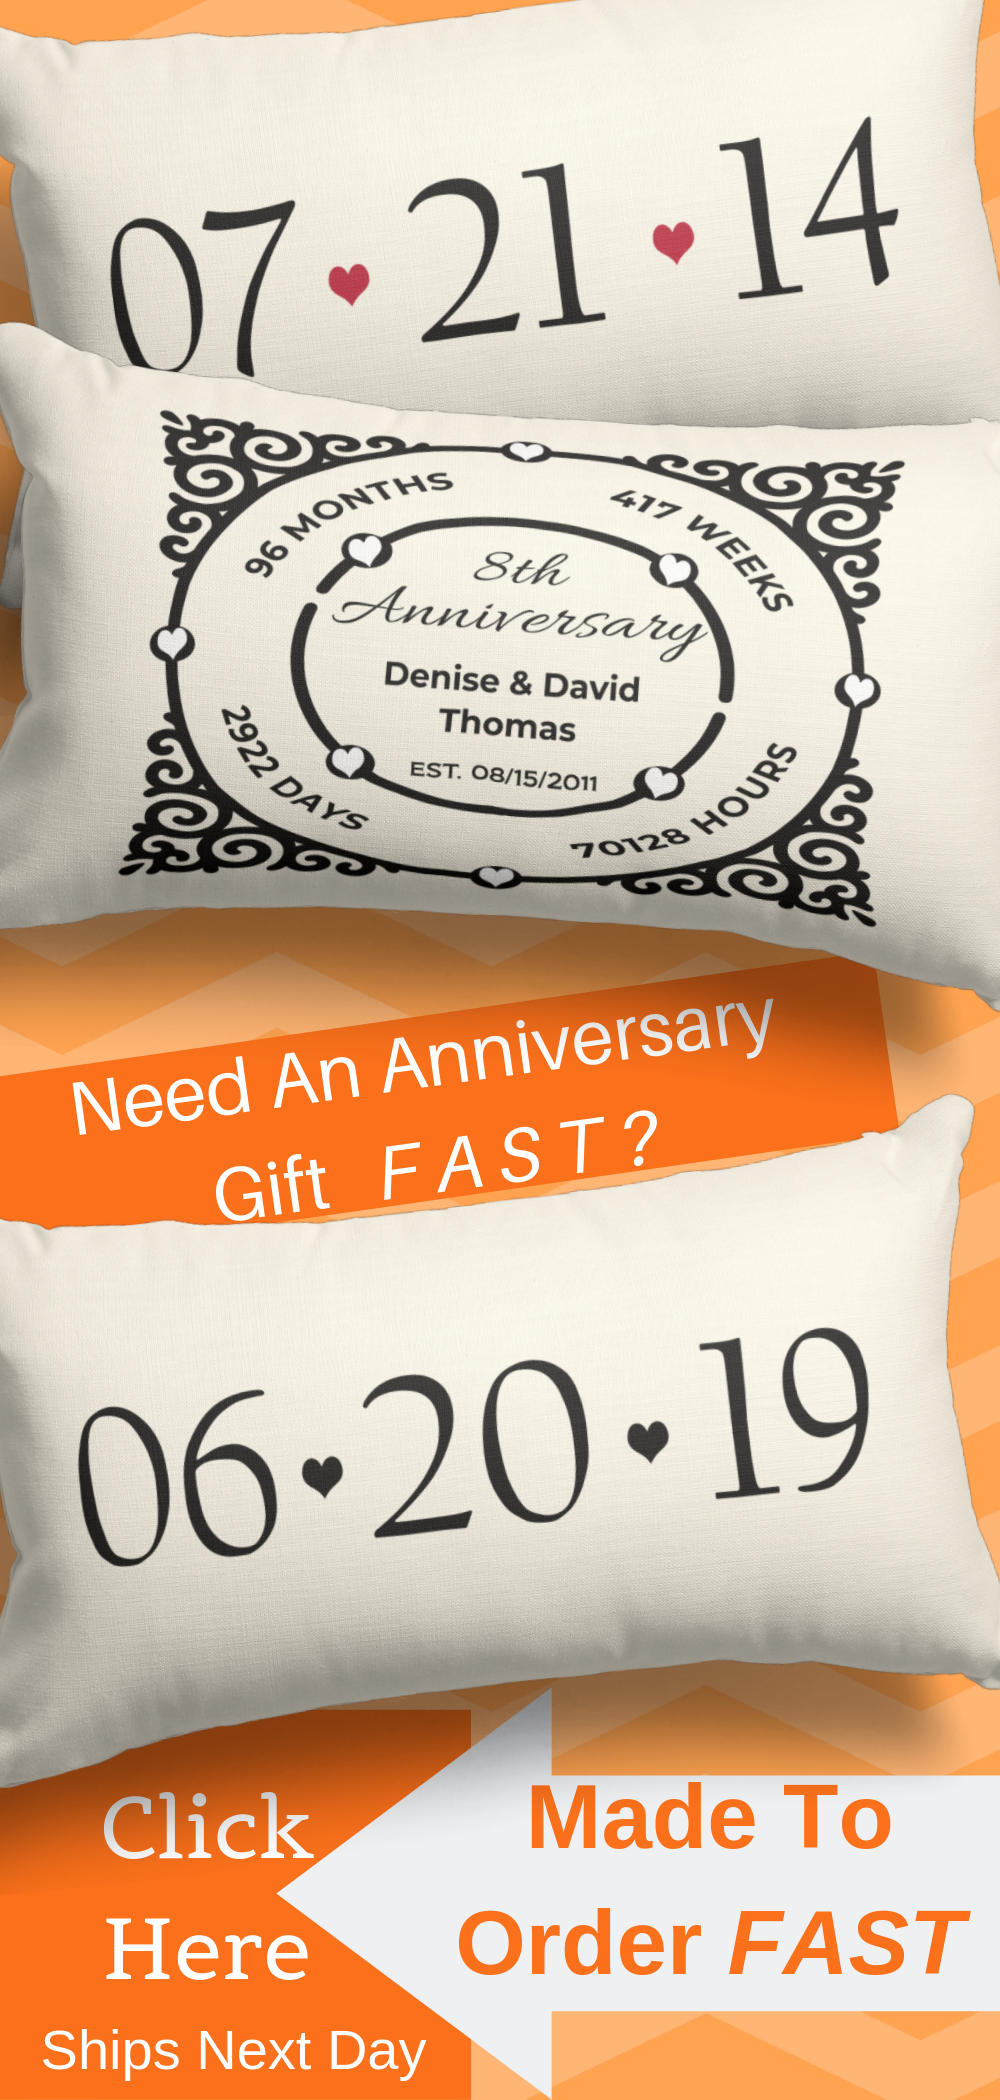 Wedding Anniversary Gifts for Parents, Couples, and Friends #20thanniversarywedding wedding anniversary gifts for parents, anniversary date gifts, last minute anniversary gifts for parents, 50th anniversary gifts, 30th anniversary gifts,  25th anniversary gifts, 40th anniversary gifts, 20th anniversary gifts, 35th anniversary gifts, anniversary gifts for couples, anniversary gifts for friends, anniversary ideas for couples, anniversary ideas for parents, anniversary date decor, 10th anniversary #20thanniversarywedding